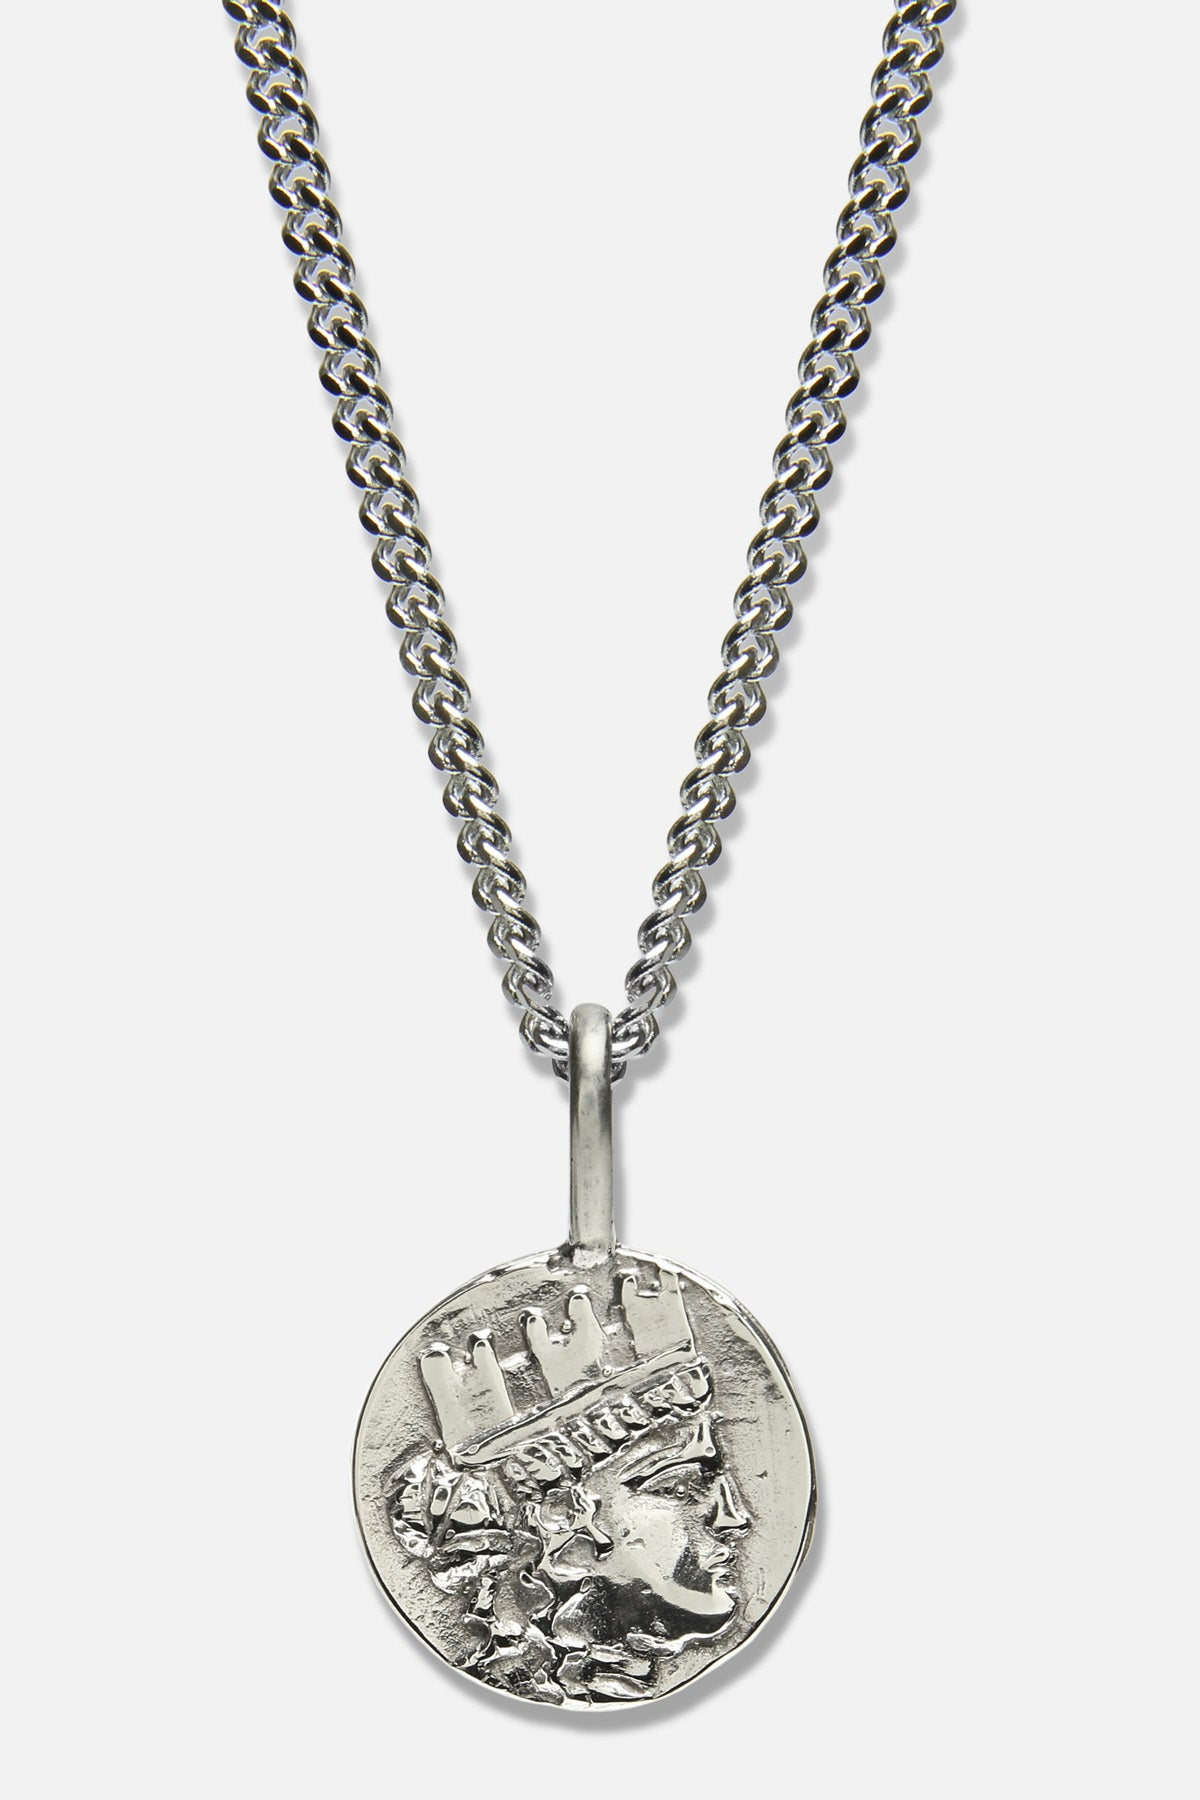 GODDESS OF FORTUNE CHARM NECKLACE IN WHITE BRONZE - Fortune Goods